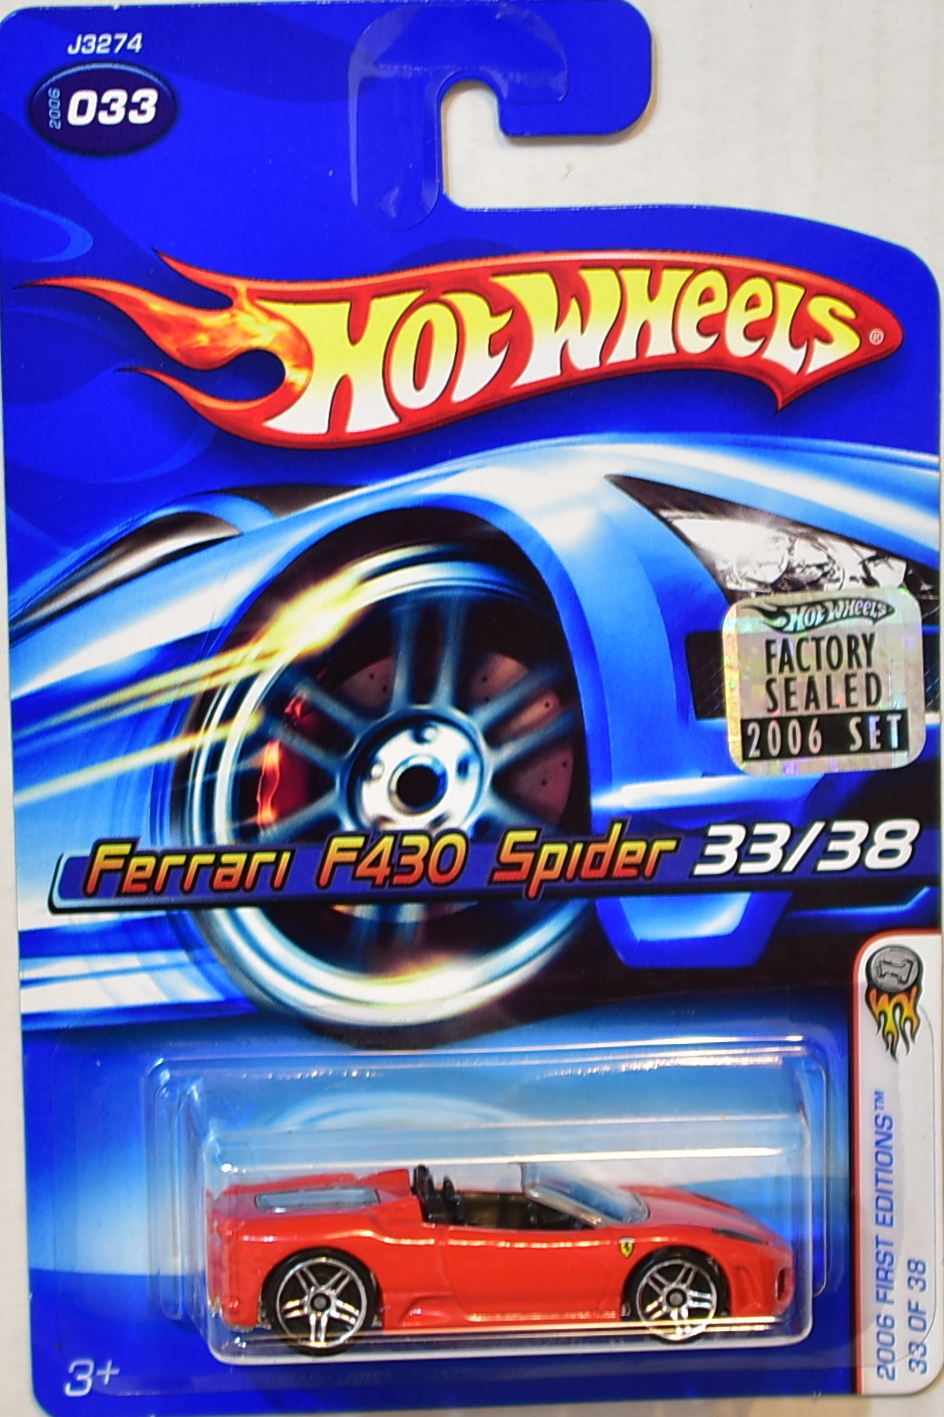 HOT WHEELS 2006 FIRST EDITIONS FERRARI F430 SPIDER #033 FACTORY SEALED